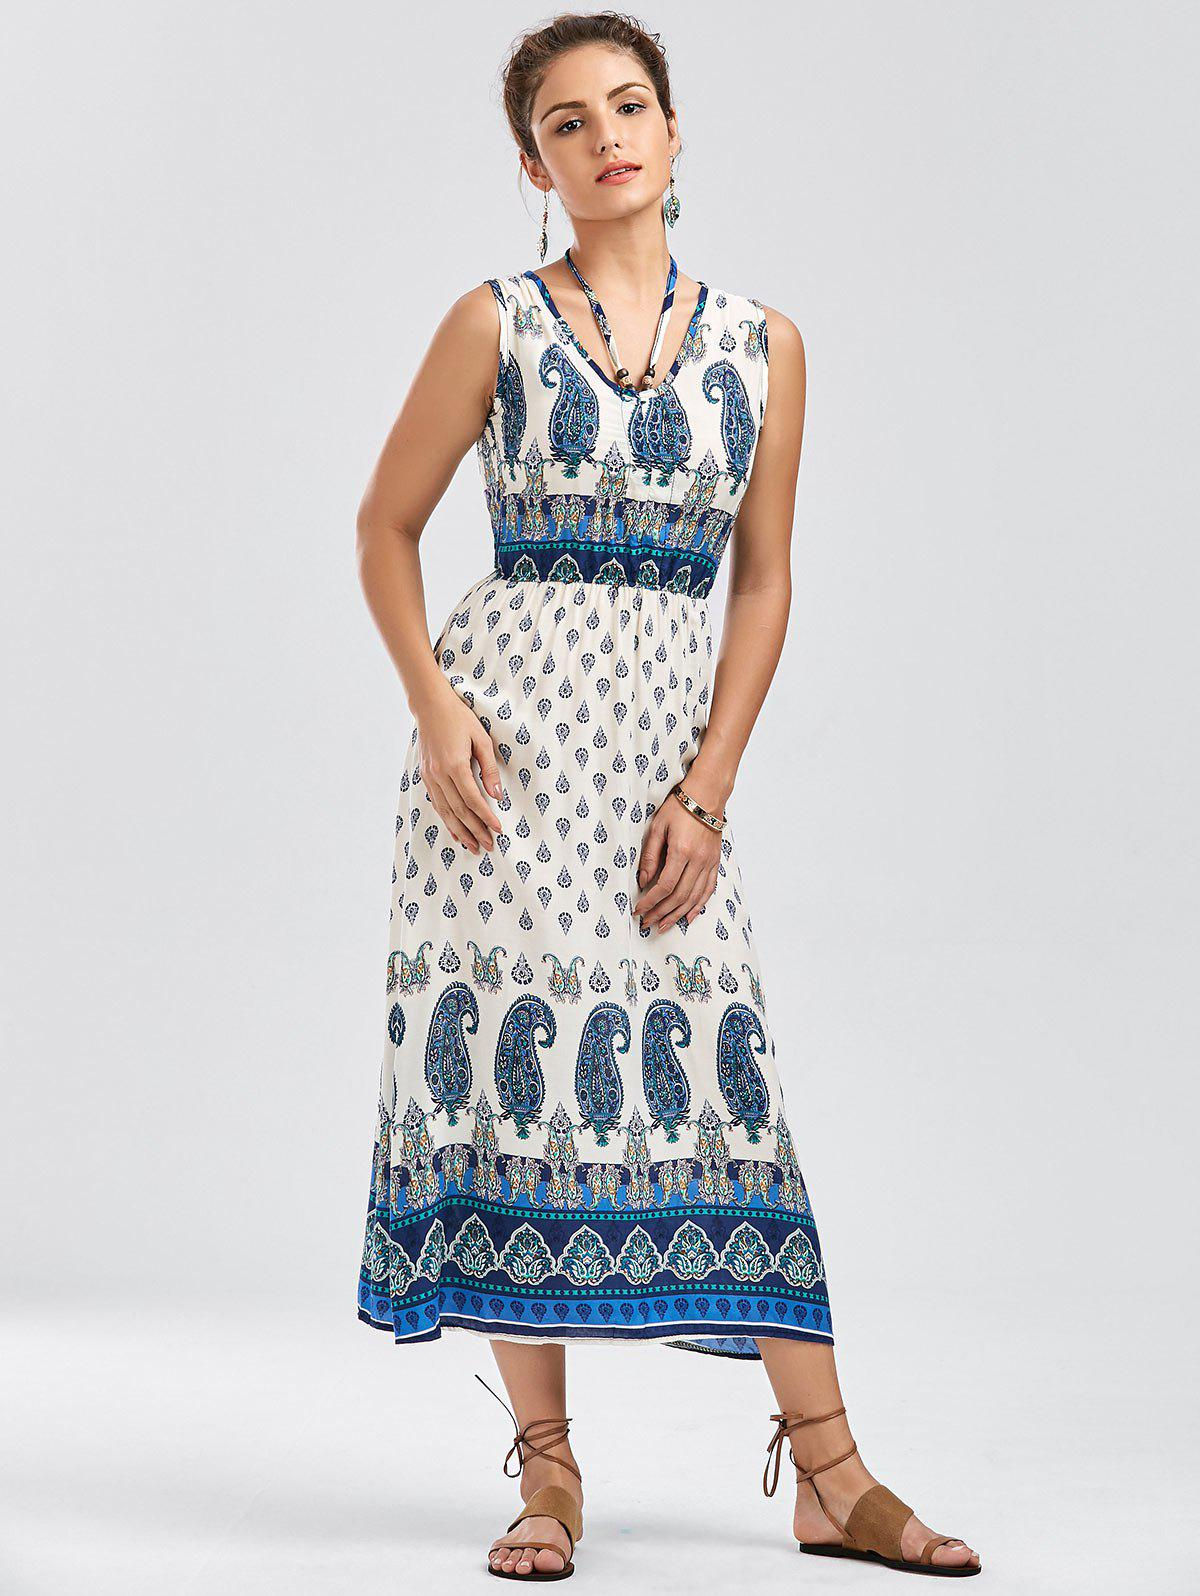 Bohemian Tribal Paisley Print Dress - COLORMIX S